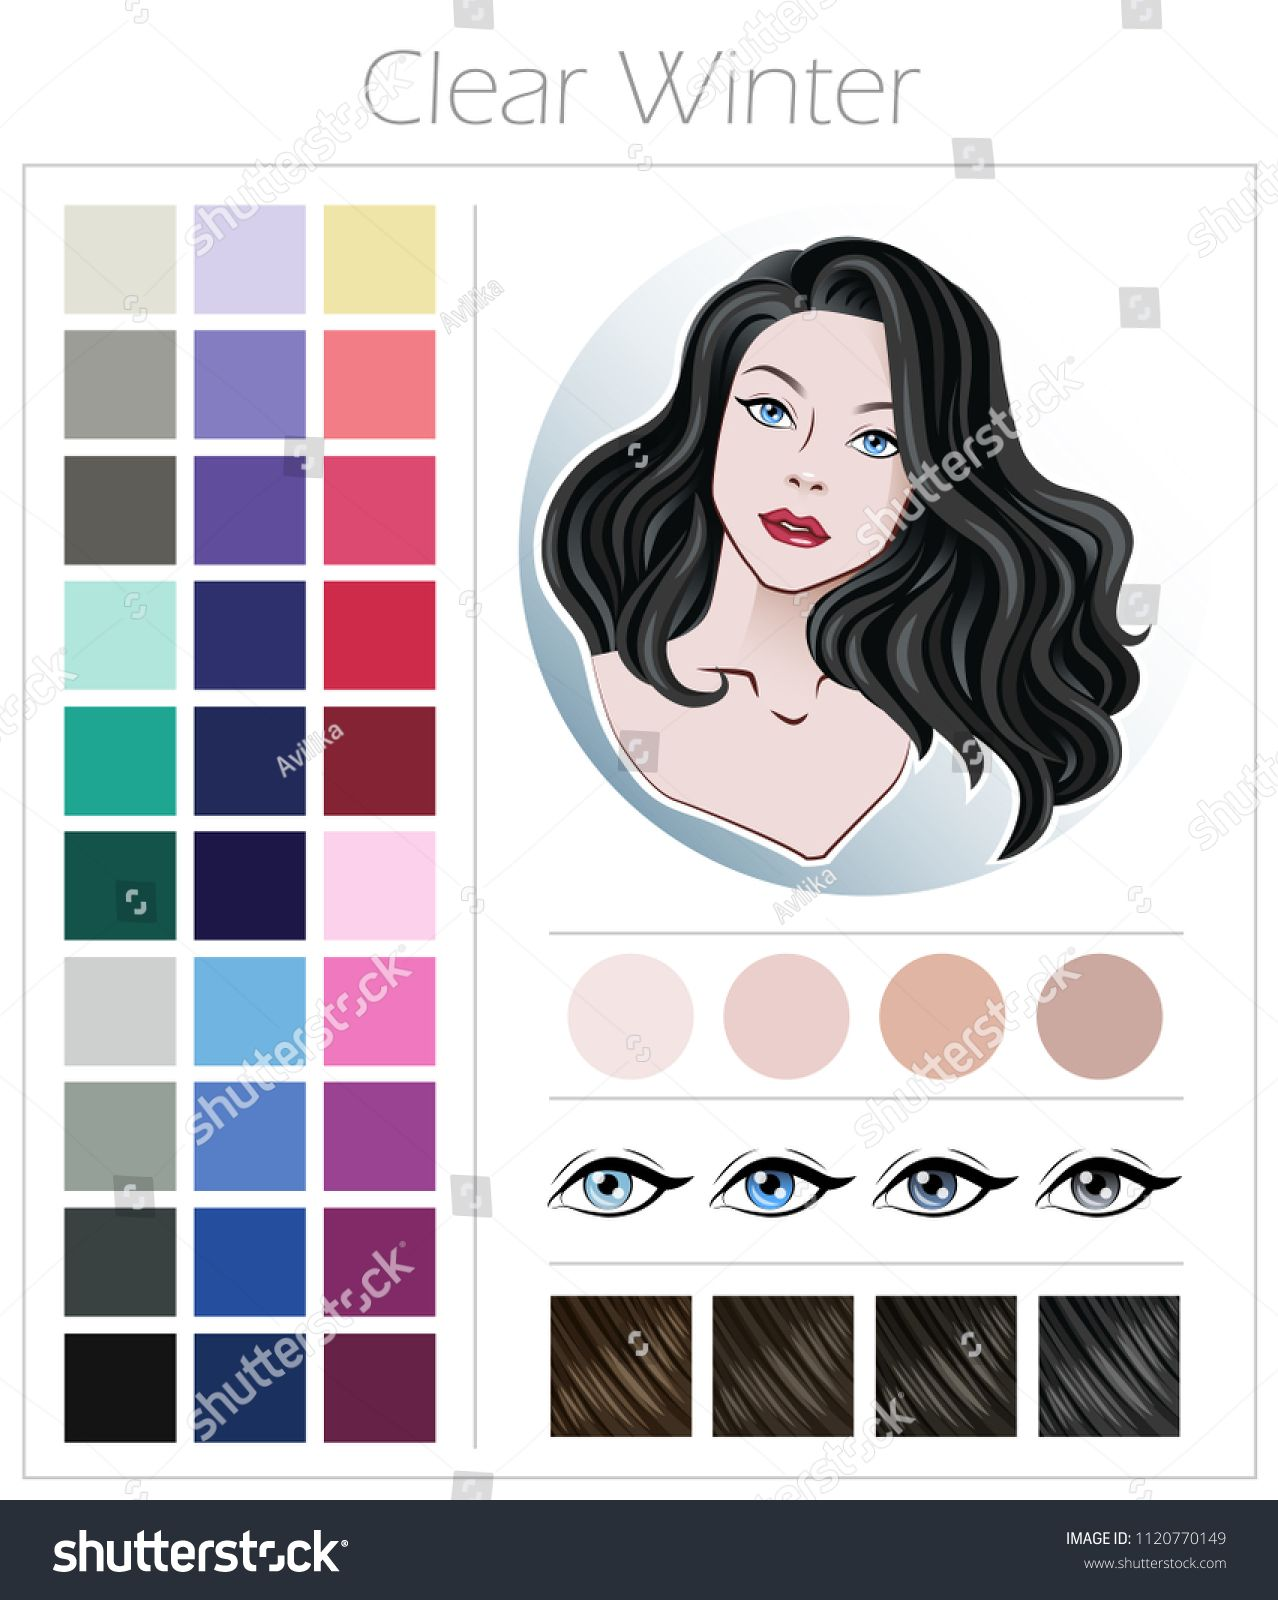 Clear winter. Color type of appearance of women. With a palette of colors suitable